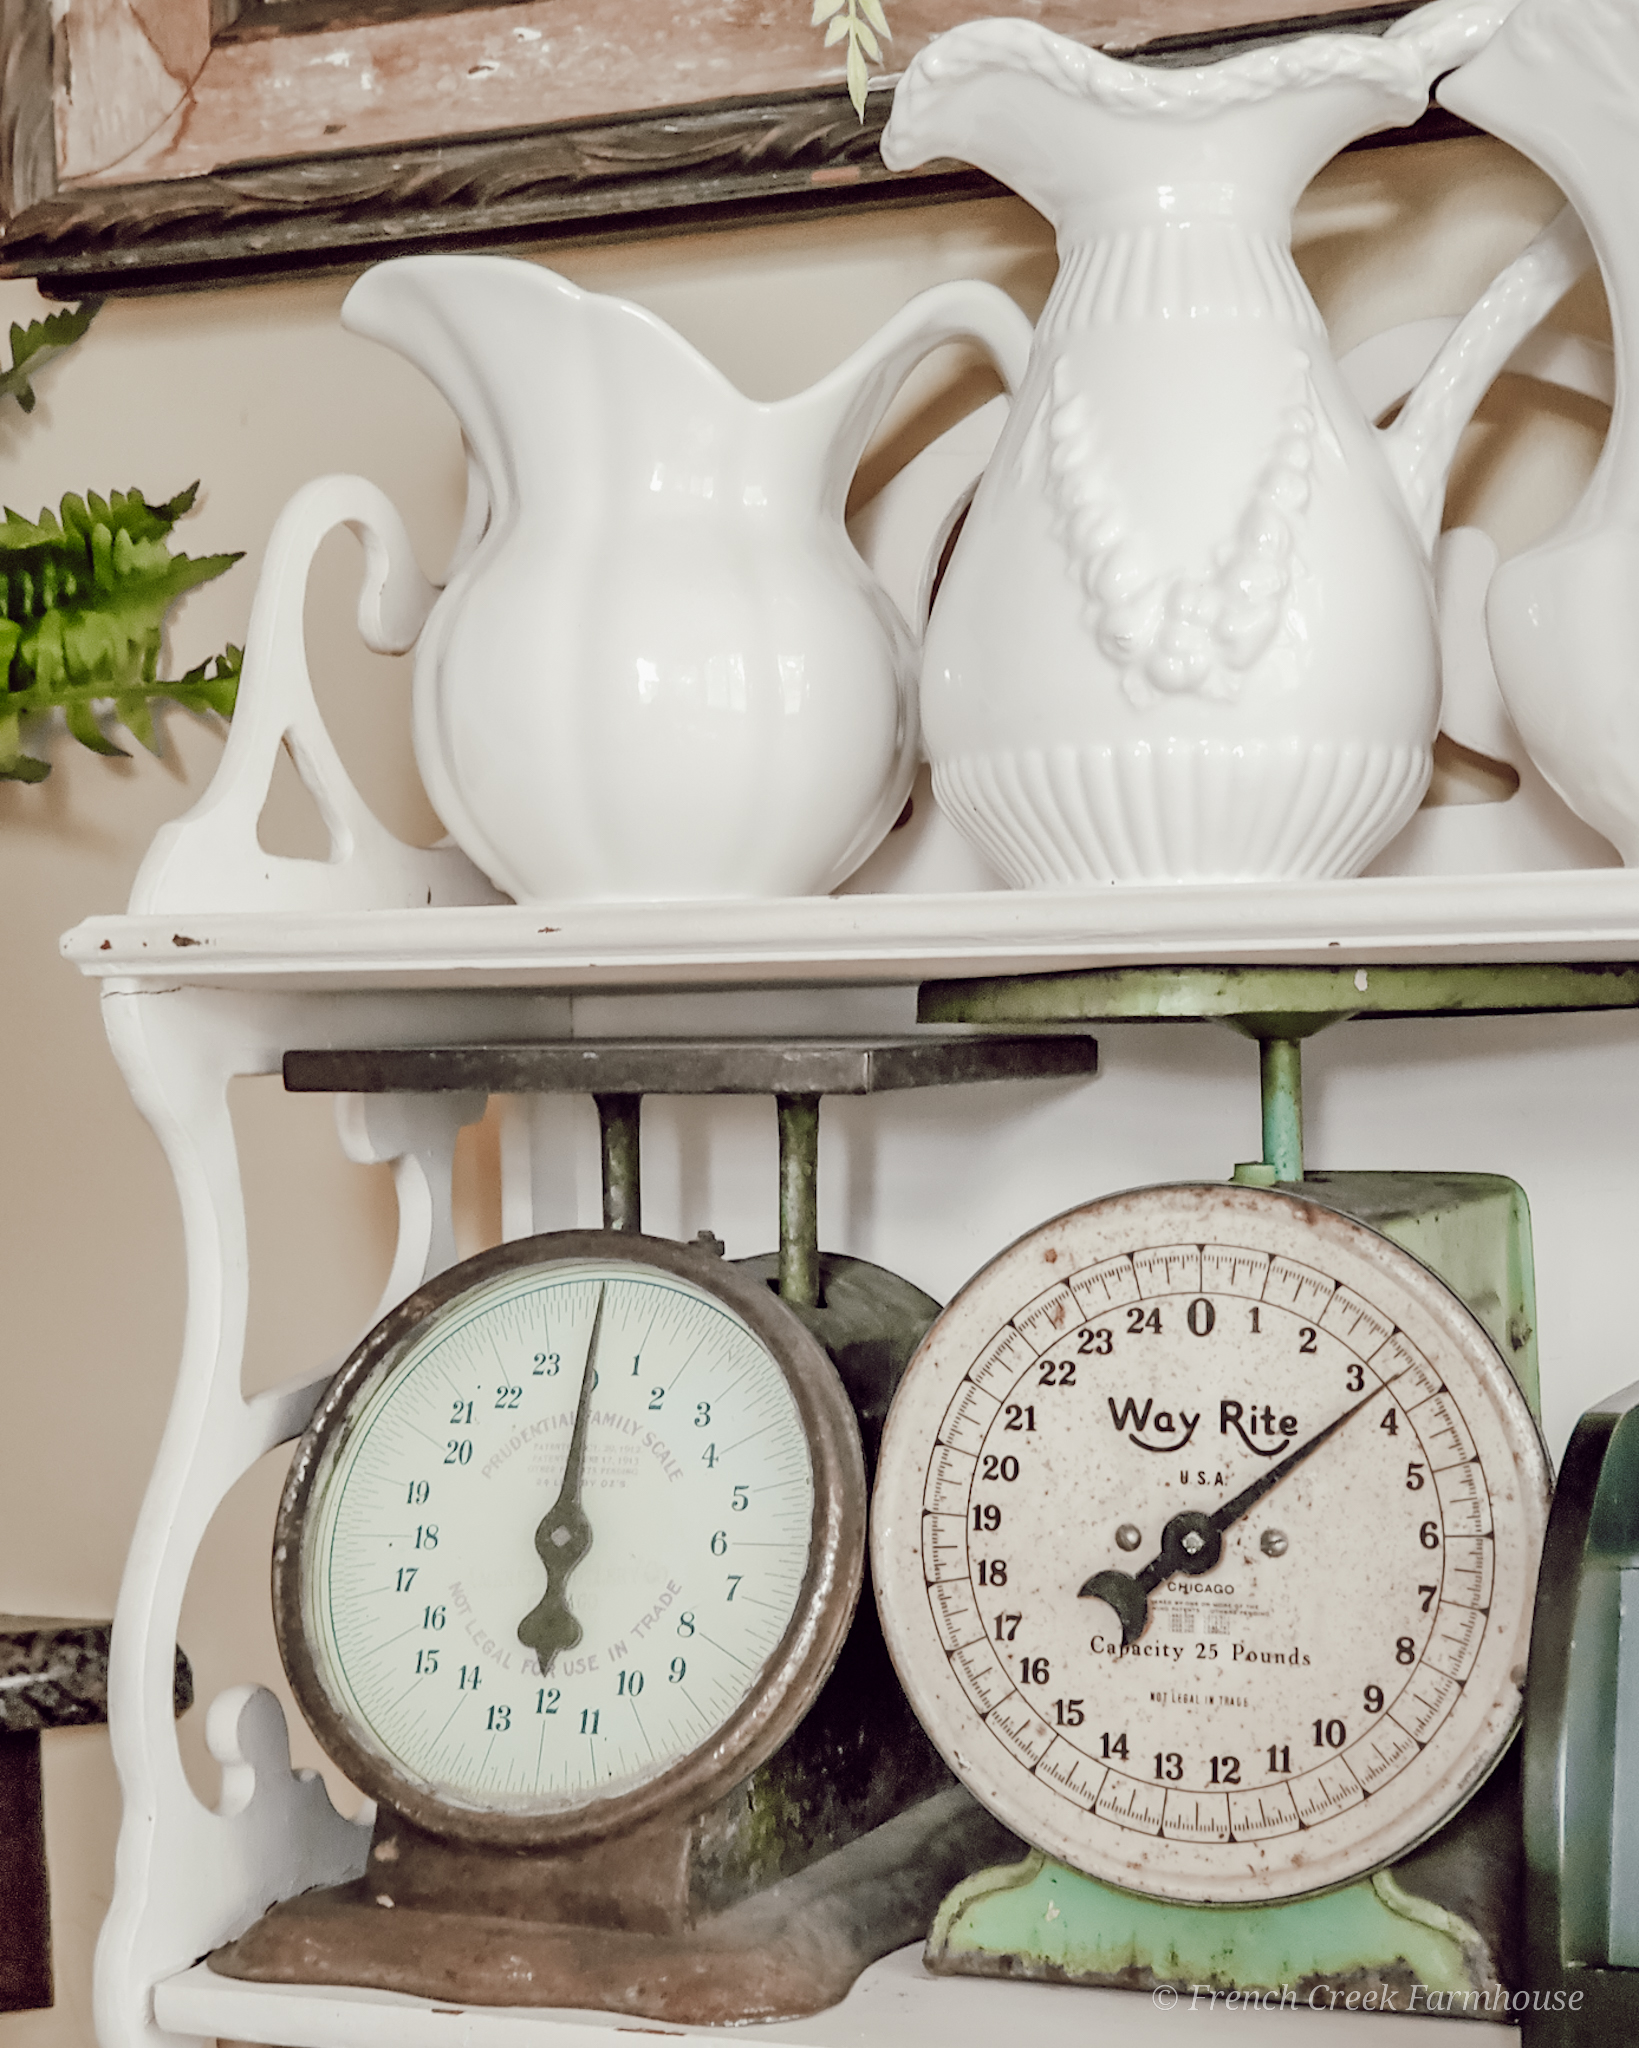 Vintage kitchen scales and ironstone vases on a chippy shelf